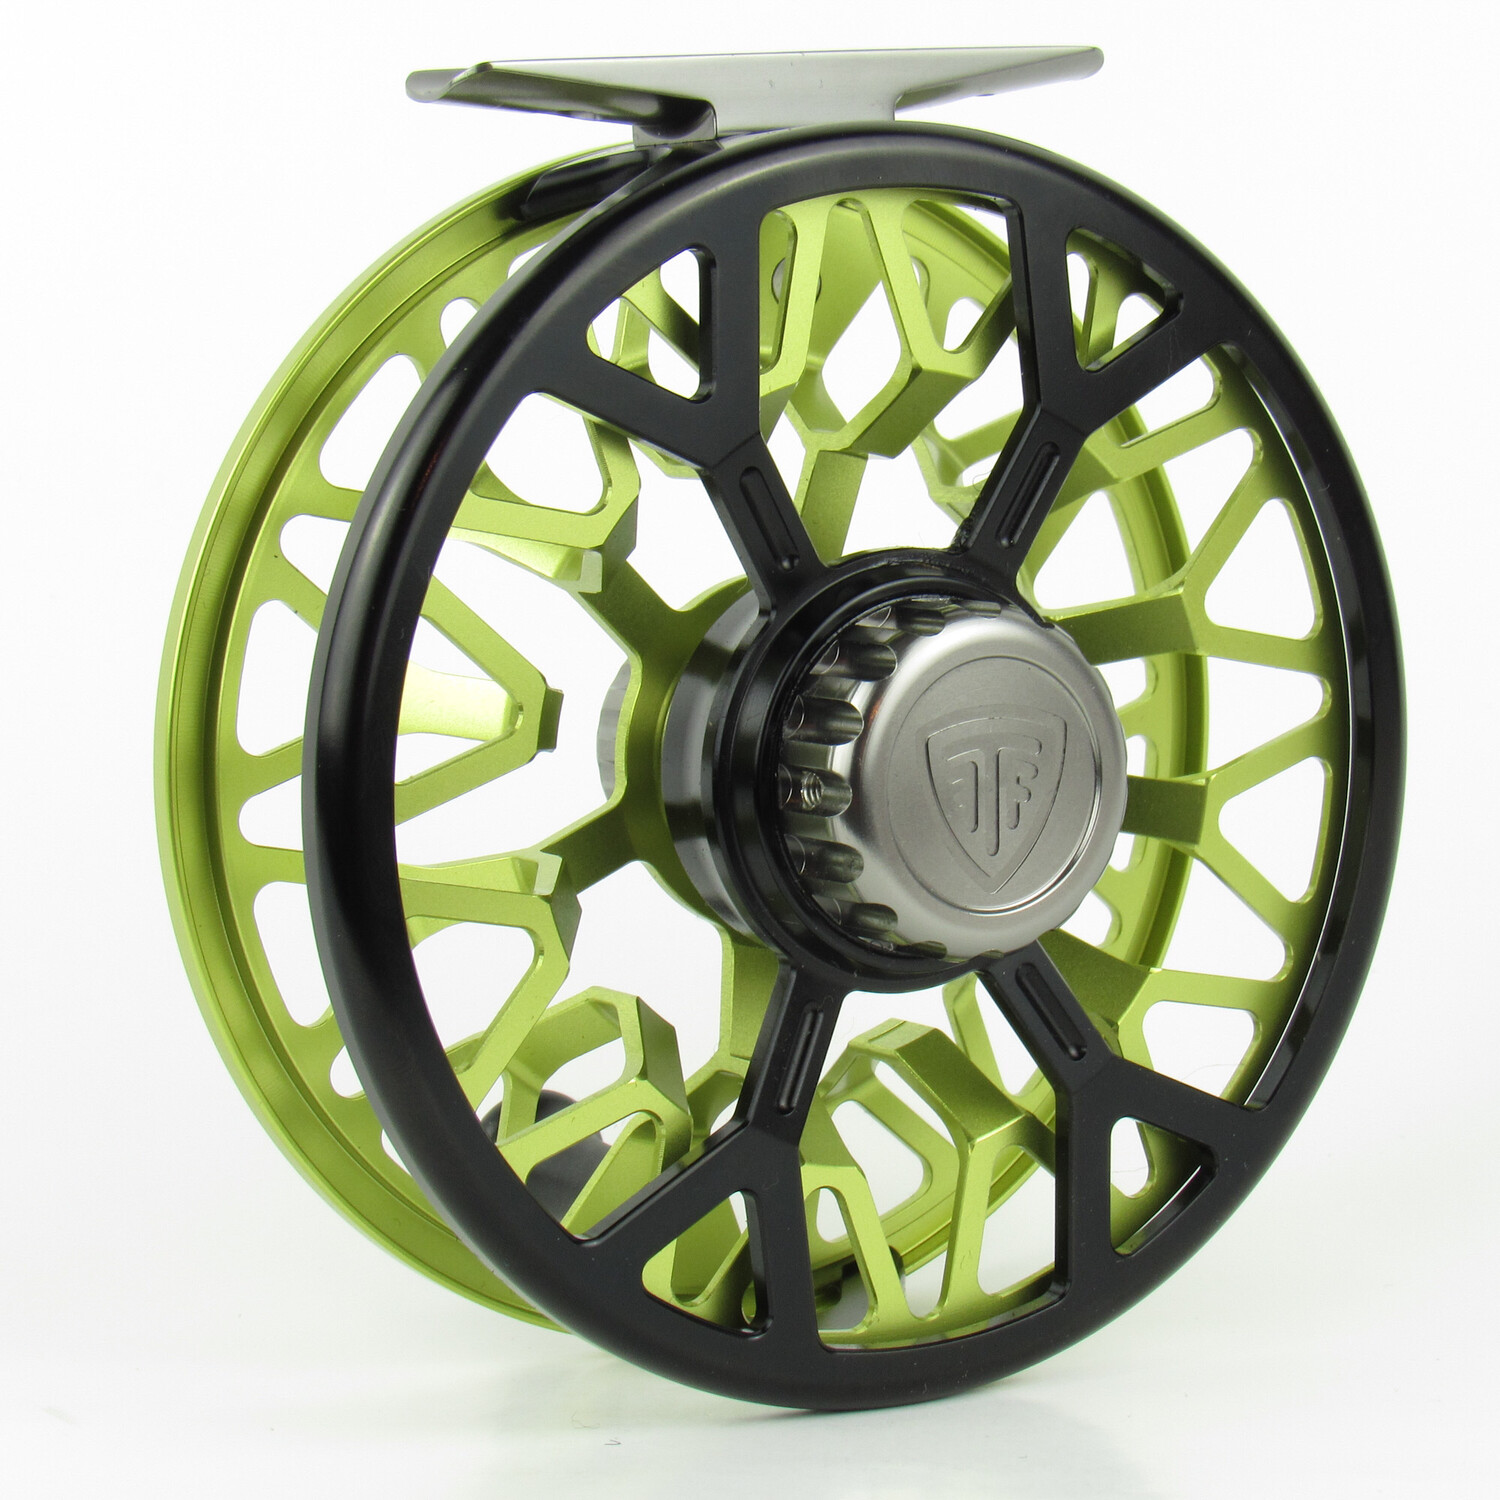 Taylor Enigma T1 6-8 olive